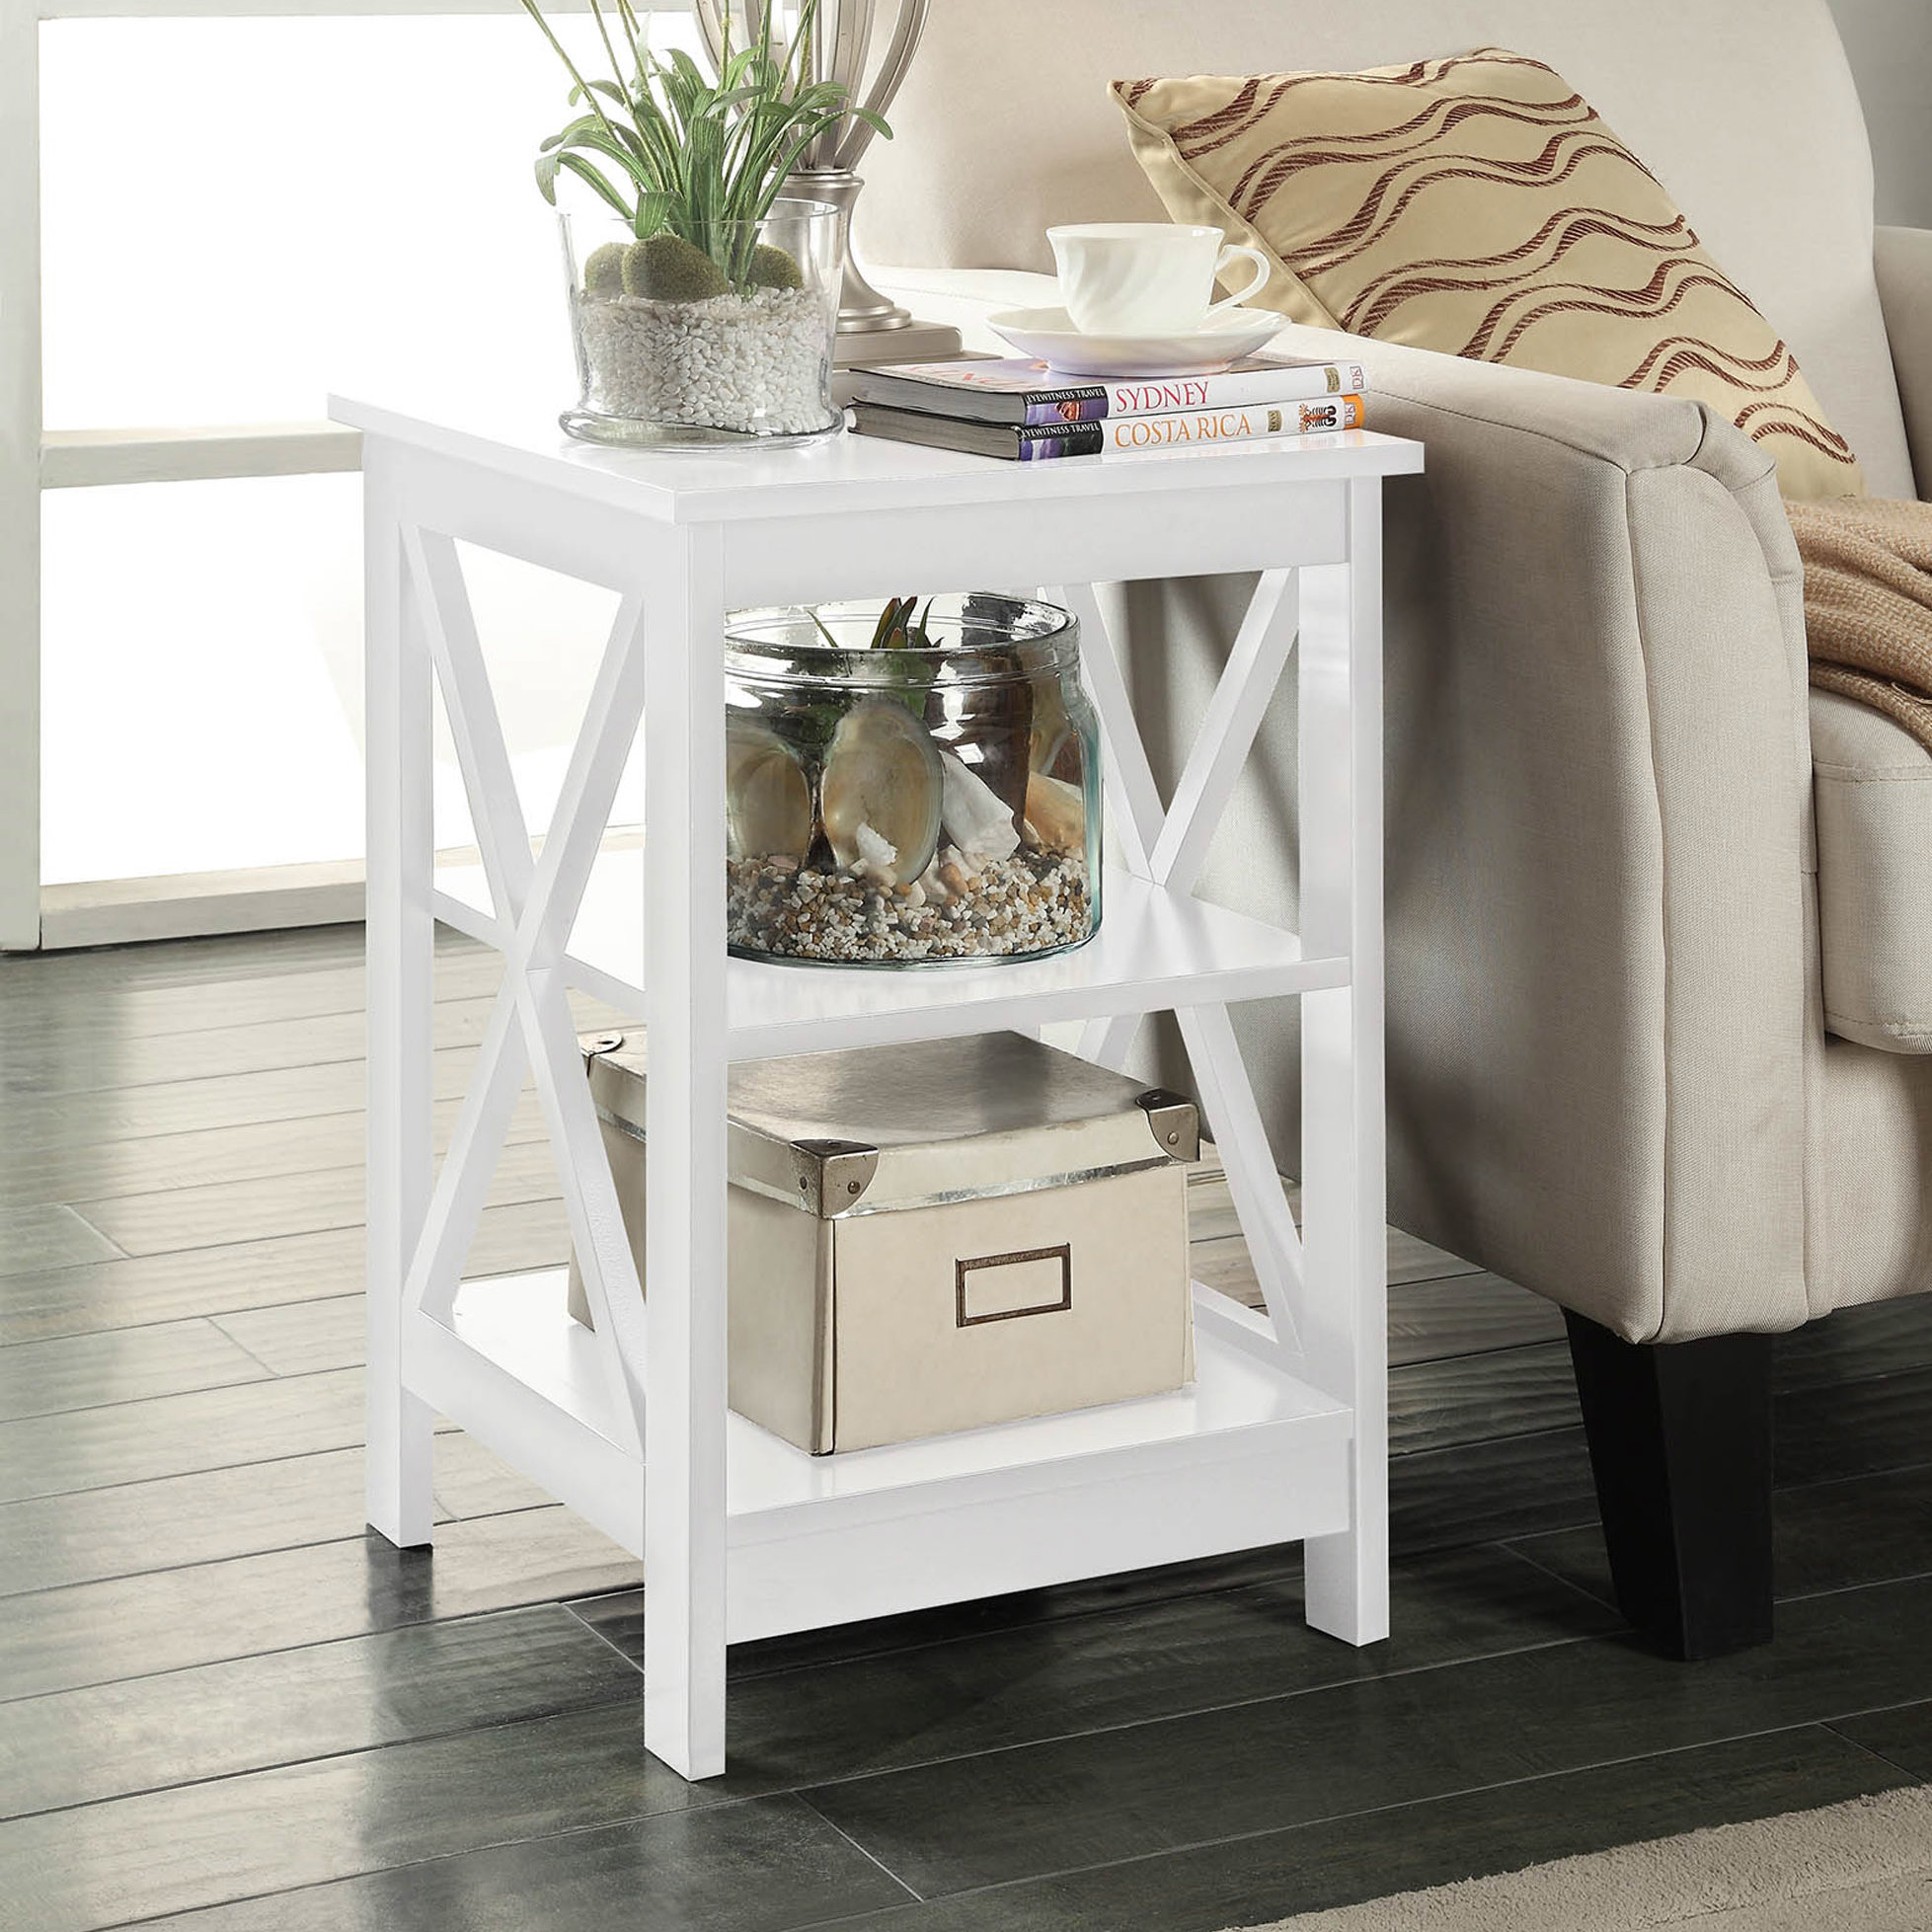 small white accent table stoneford end quickview wilcox furniture oak wood side nate berkus bath rug folding patio set cabinet patchwork armchair wine storage crystal lamp british